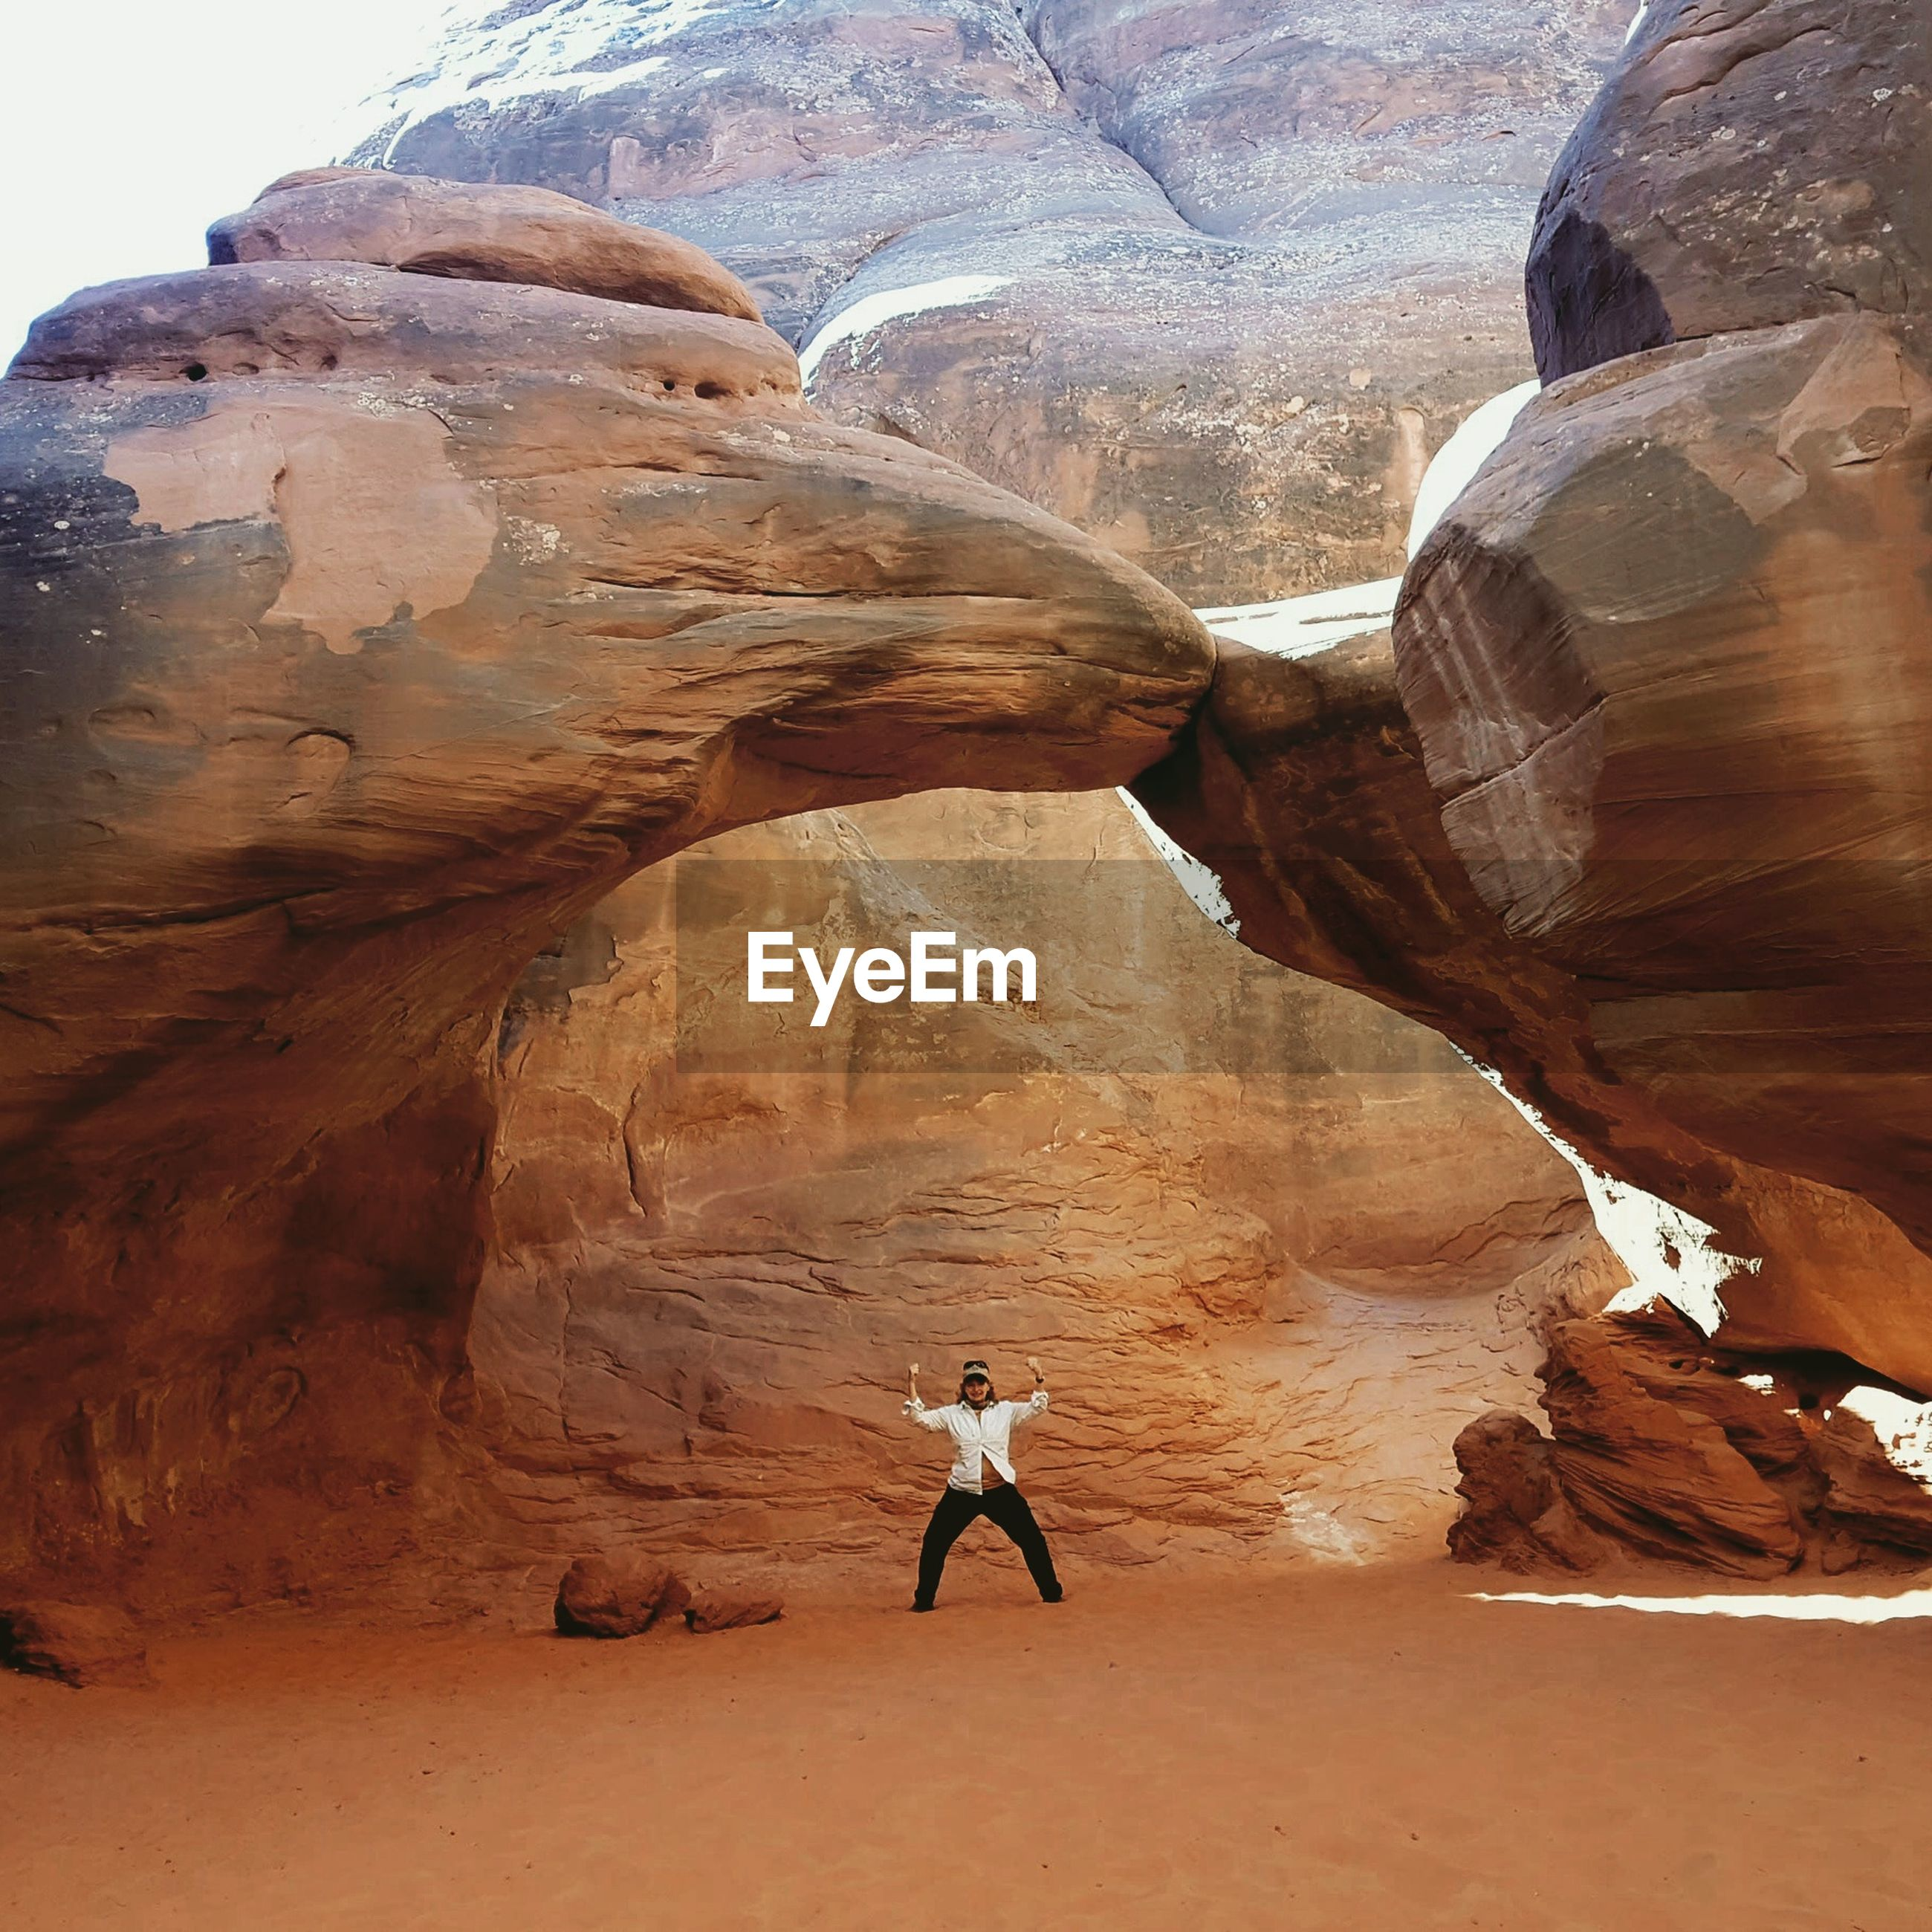 Woman standing under rock formations in desert